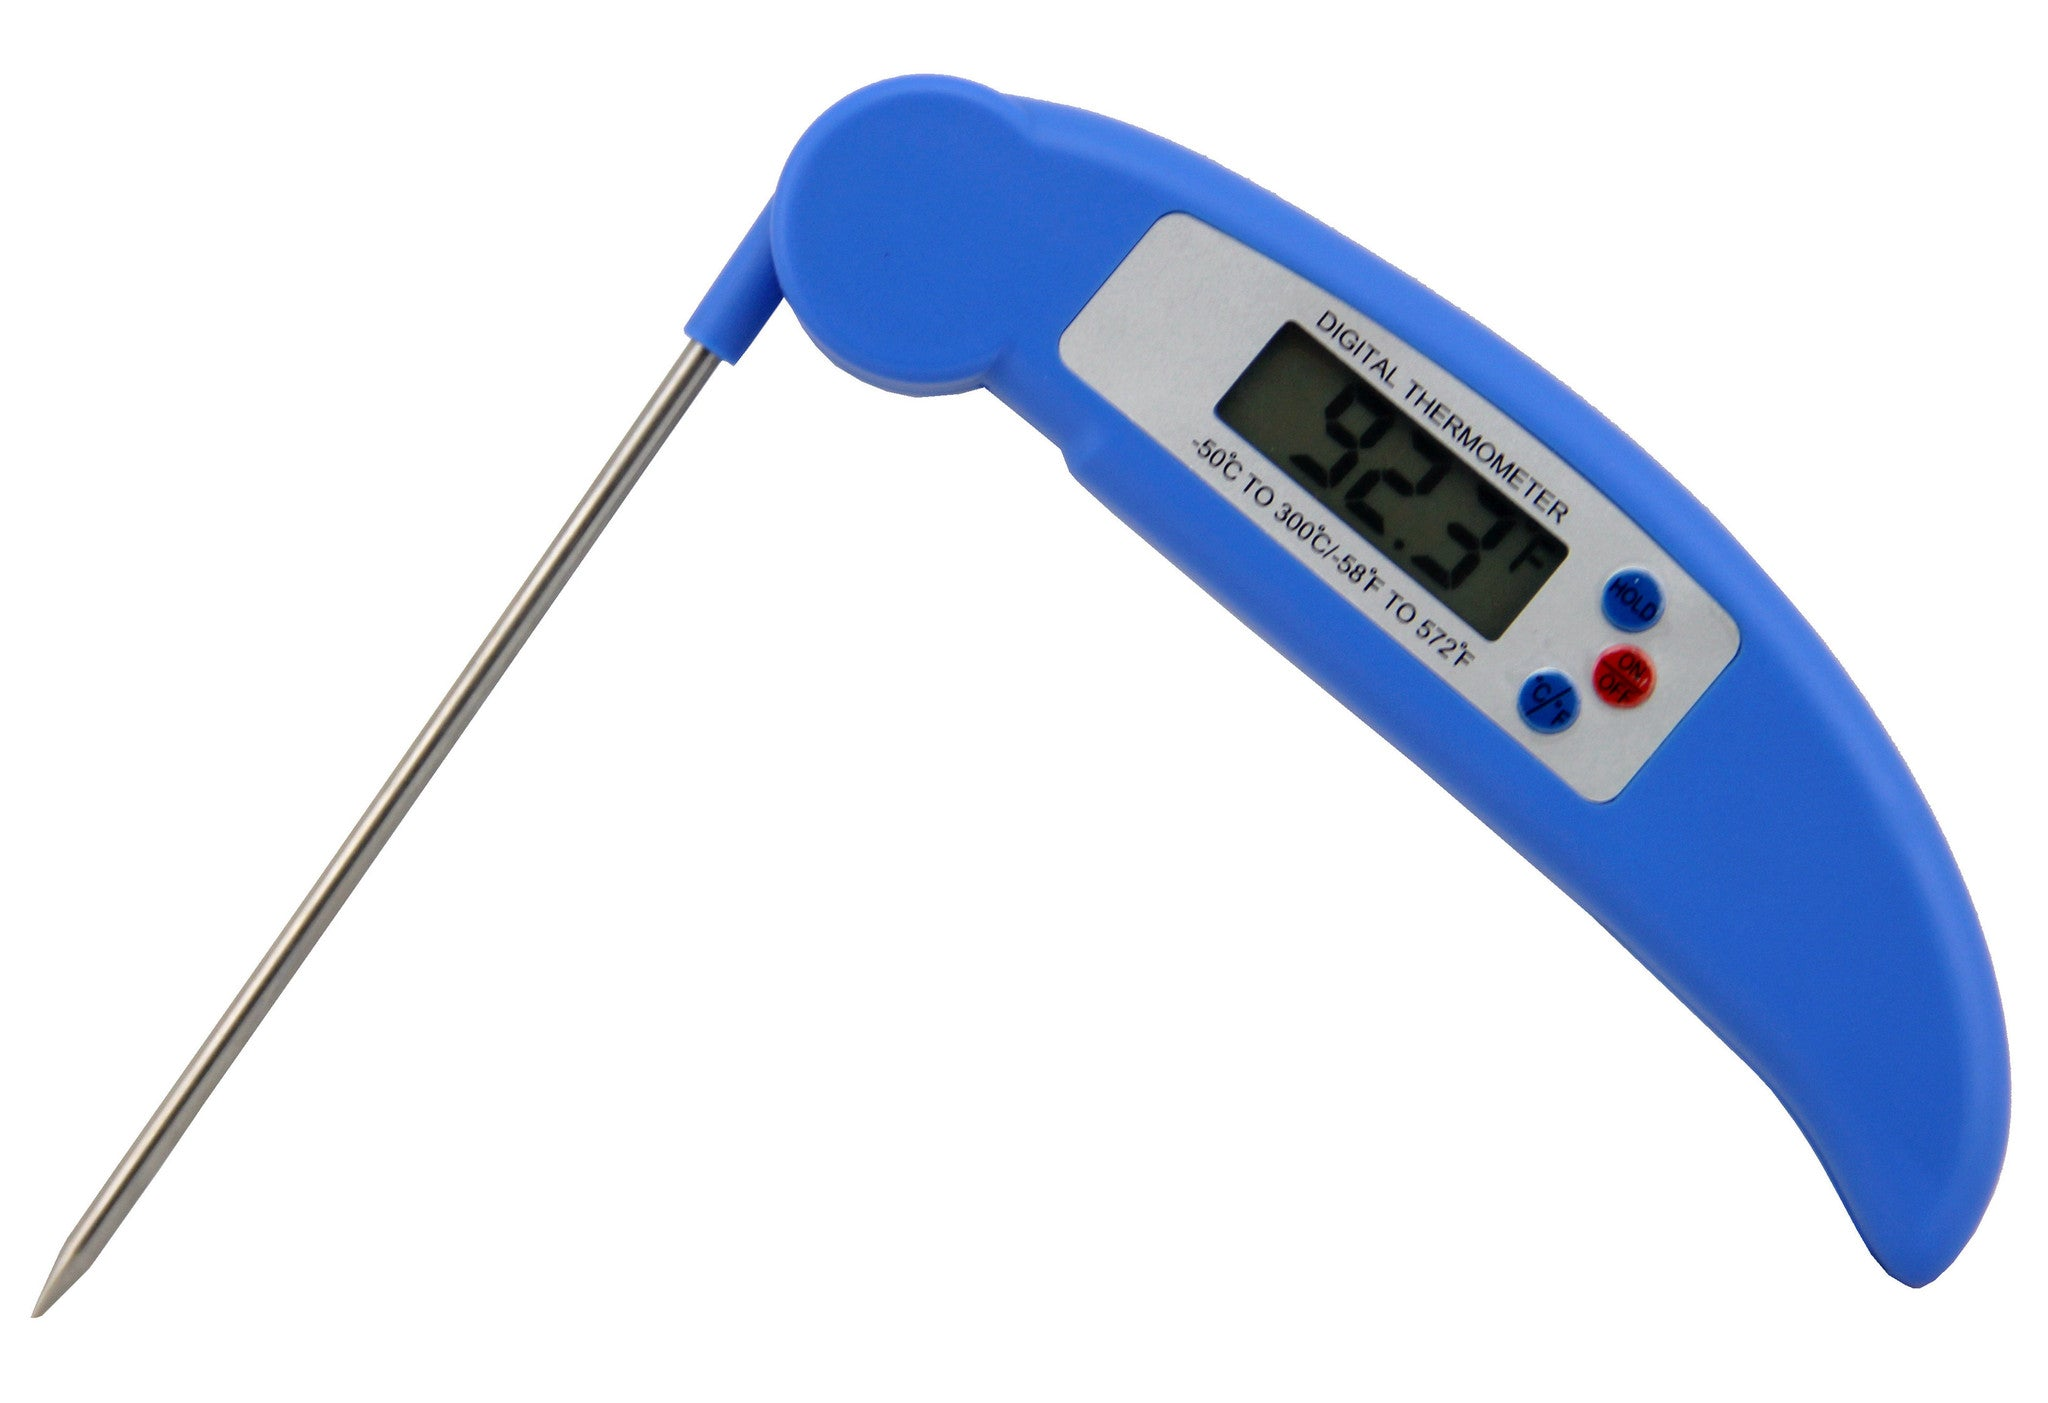 Instant-Read Digital Meat Thermometer for Cooking by Pico - Thermoemter - 3